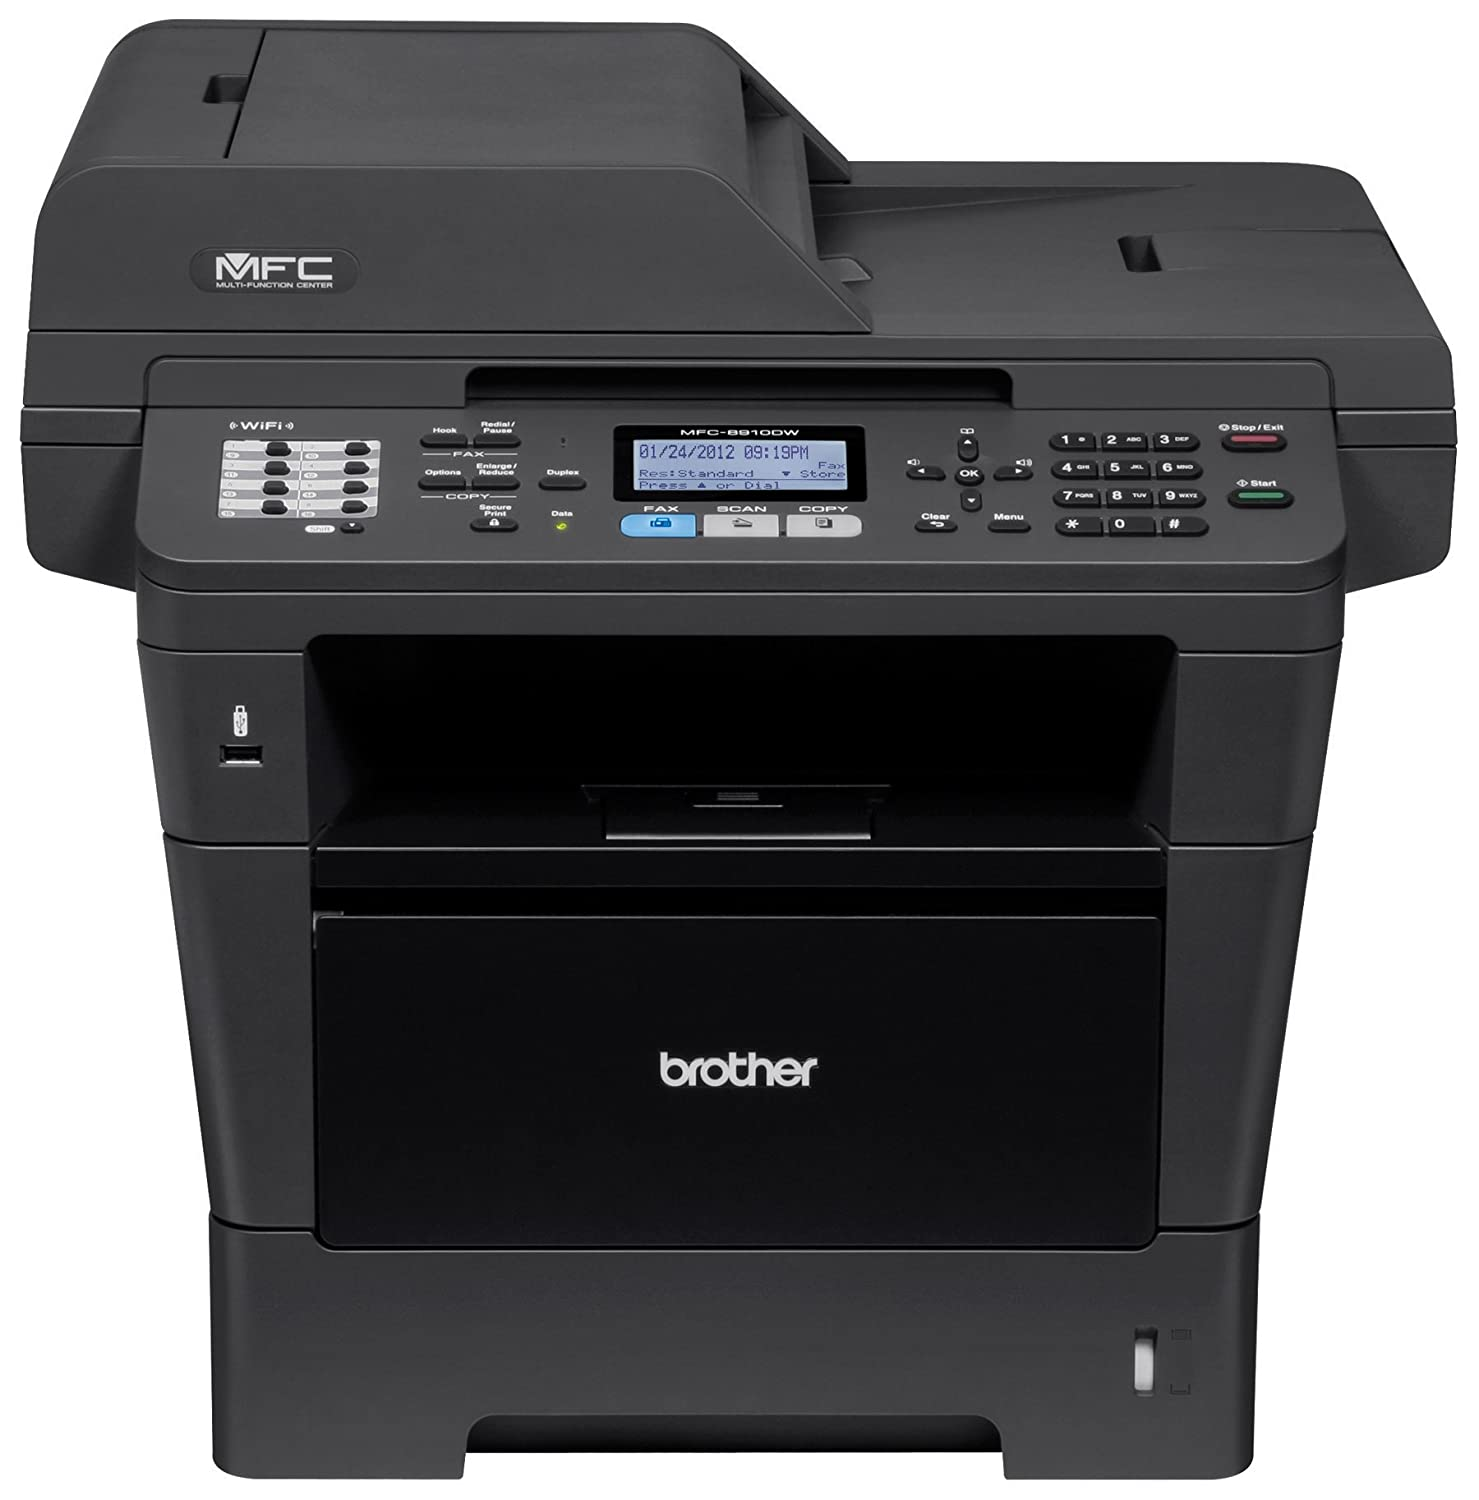 Brother Printer MFC8910DW Wireless Monochrome Printer with Scanner, Copier and Fax